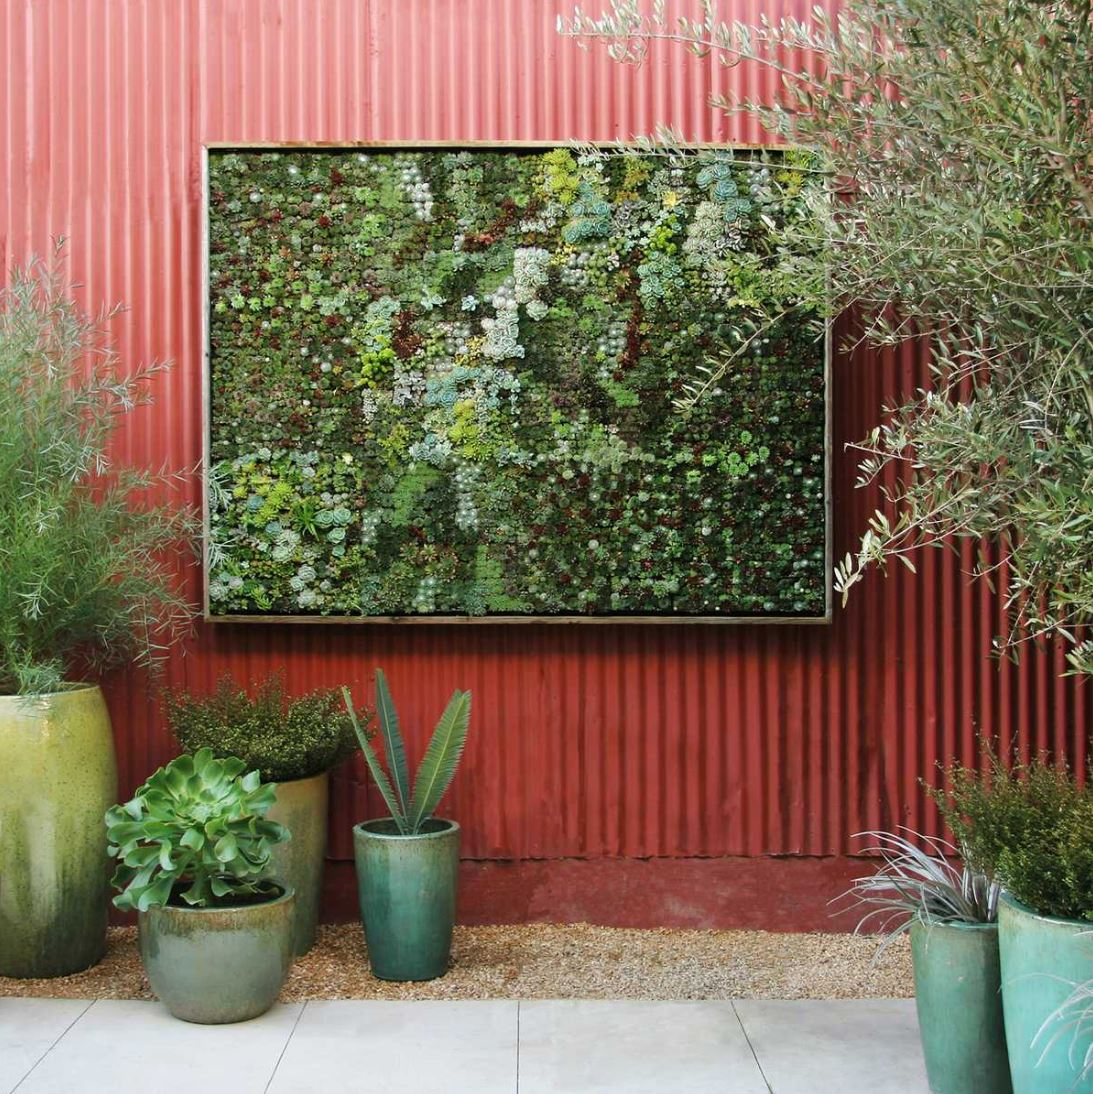 Think green 20 vertical garden ideas for Vertical garden designs